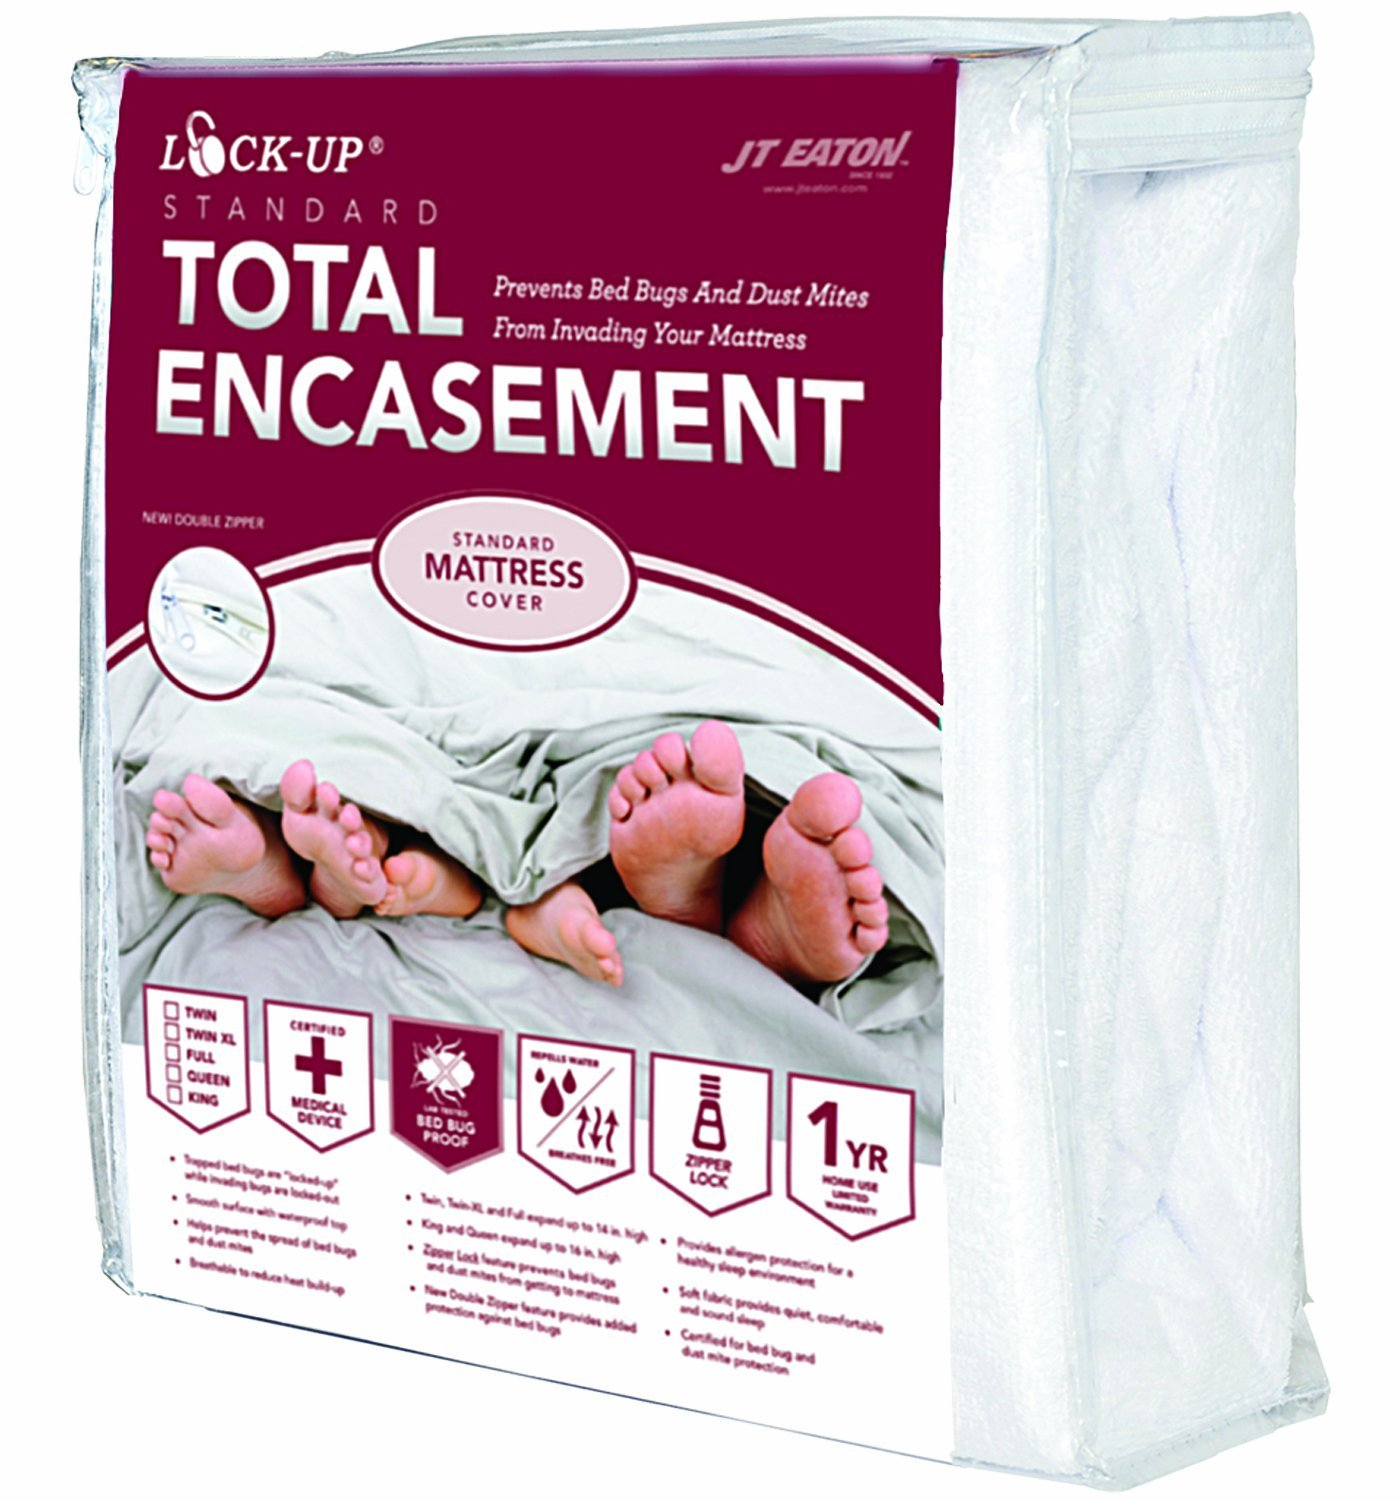 Lock-Up 83 TwinXL Size Mattress Encasement, 39 in L X 80 in W X 14 in H